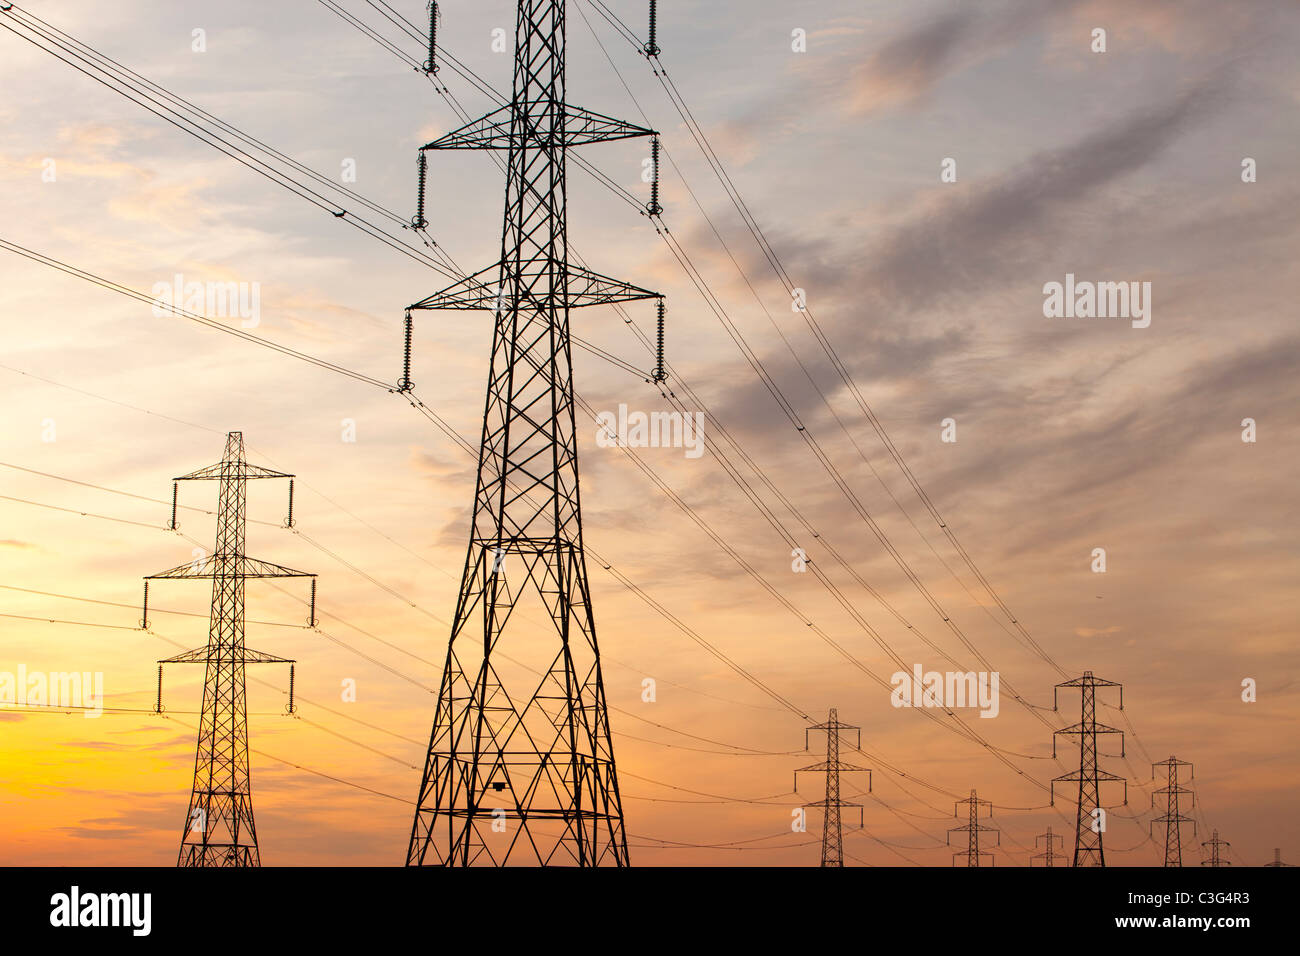 Power lines and pylons at sunset in Billingham, Teeside, UK. - Stock Image